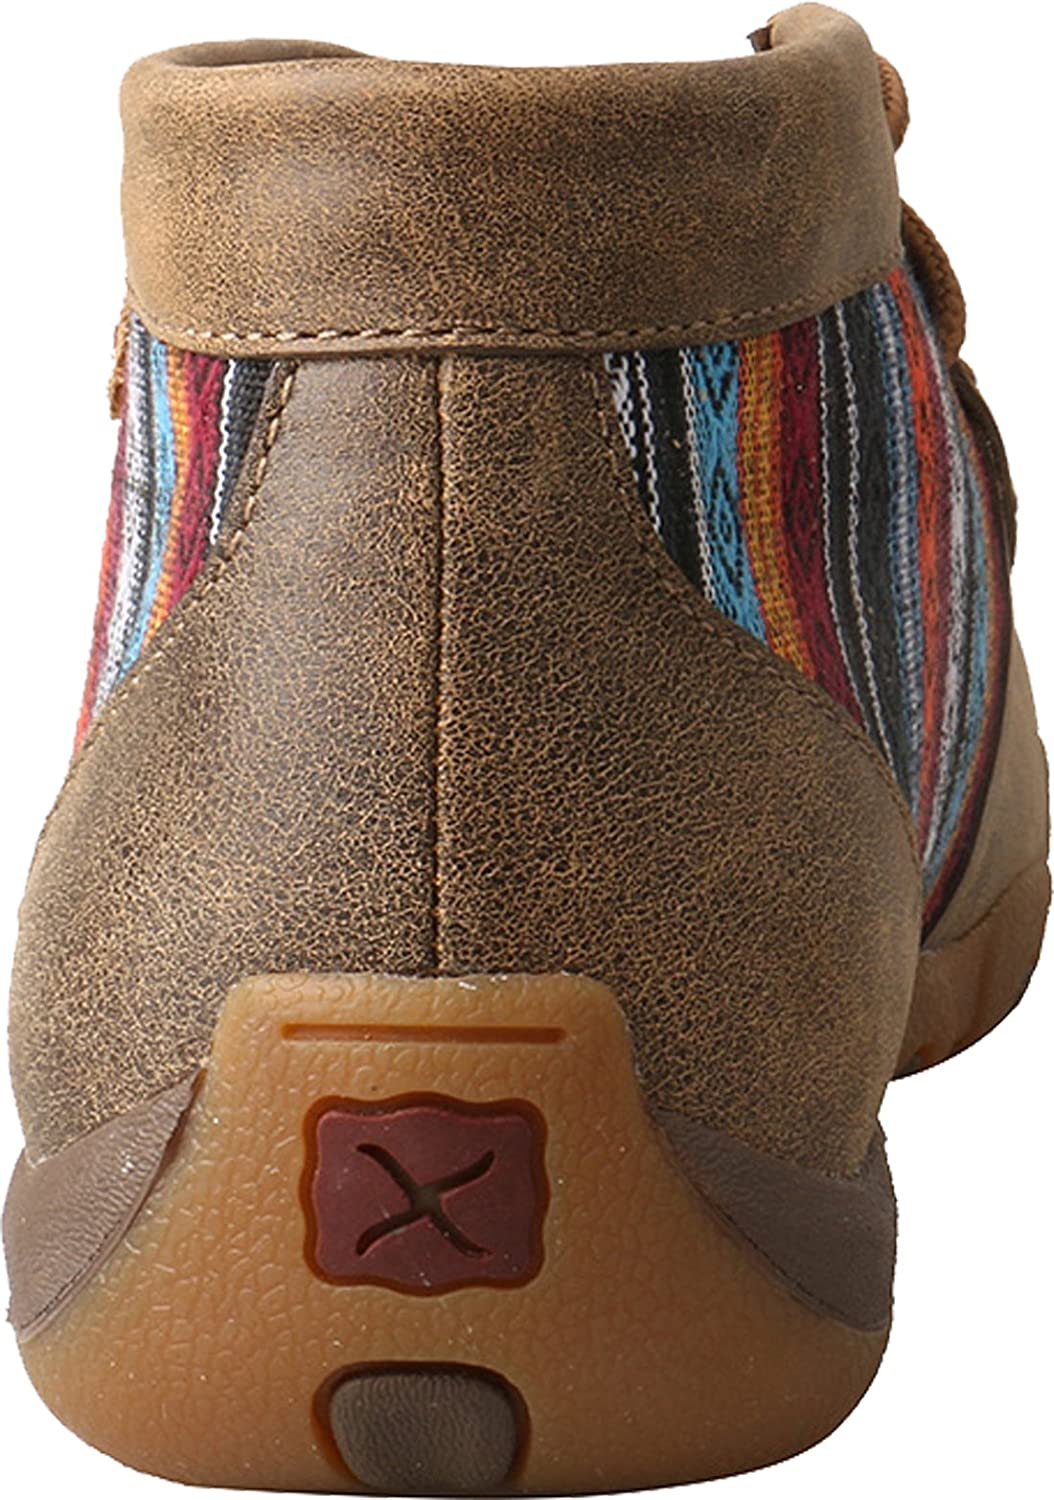 Twisted X Women's Leather Lace-up Rubber Sole Driving Moccasins - Brown/Turquoise B07FTD9BNL 7 M US Bomber / Multi